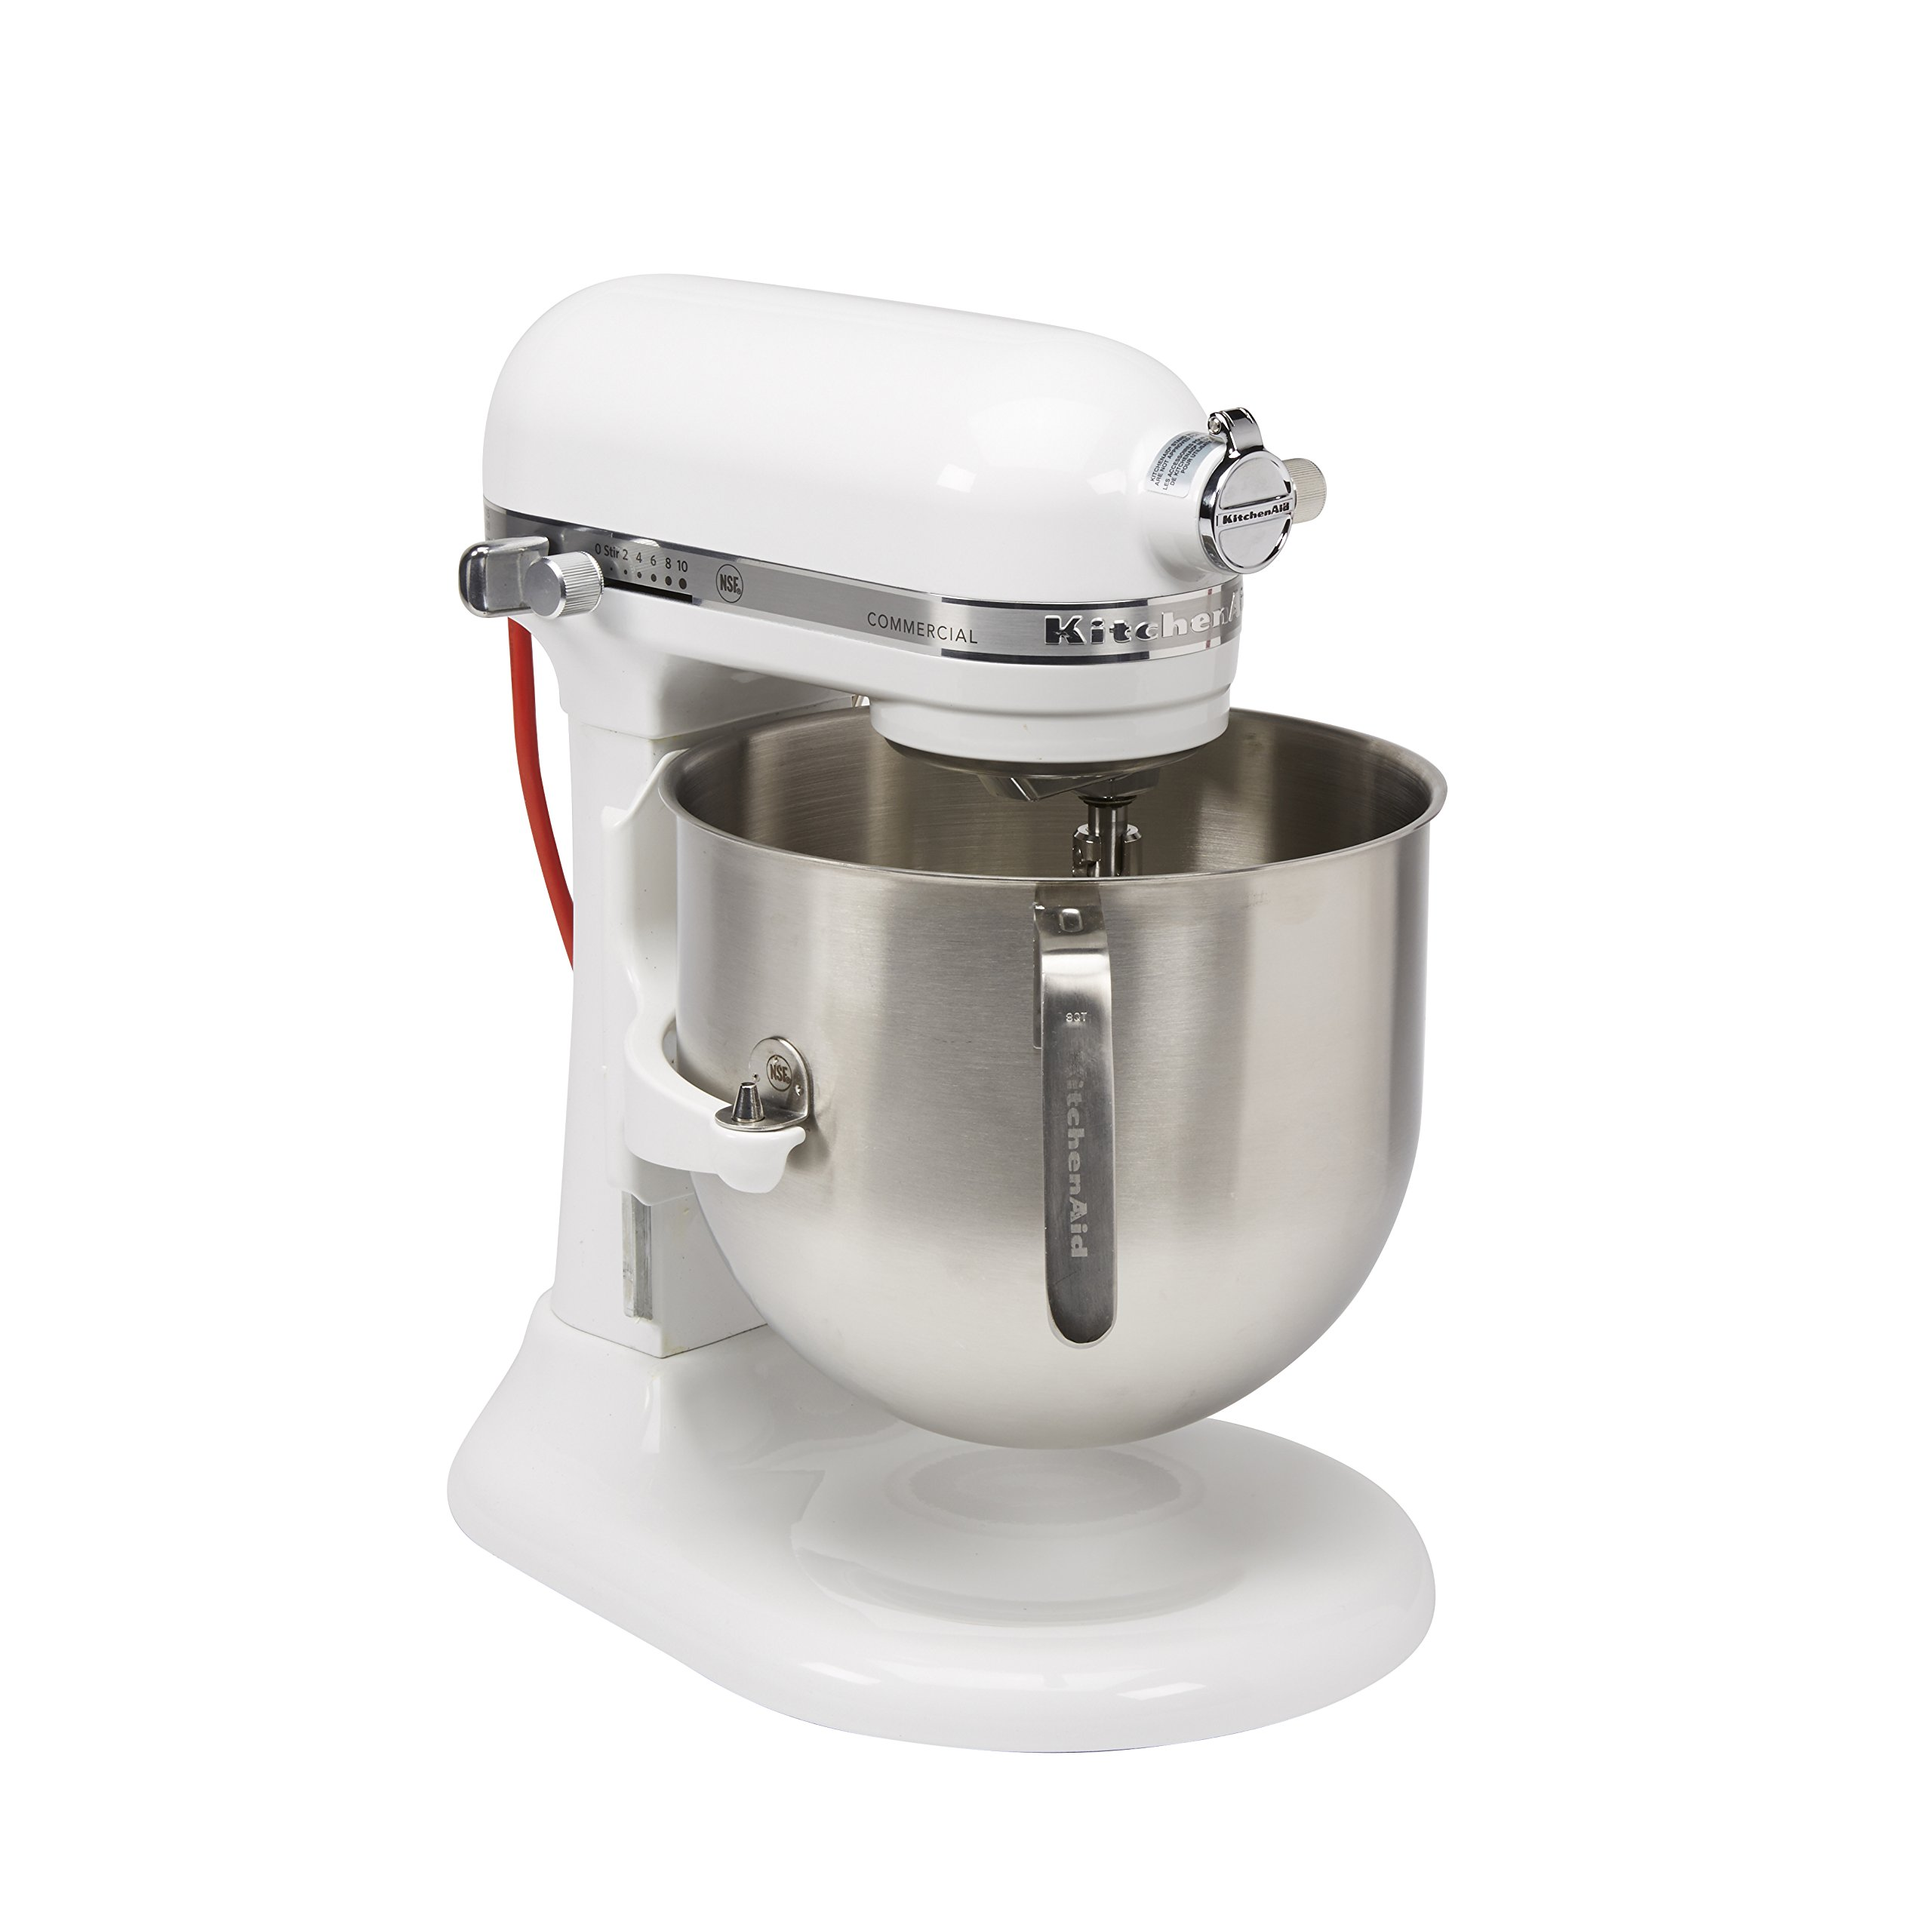 KitchenAid (KSM8990WH) 8-Quart Stand Mixer with Bowl Lift (White)